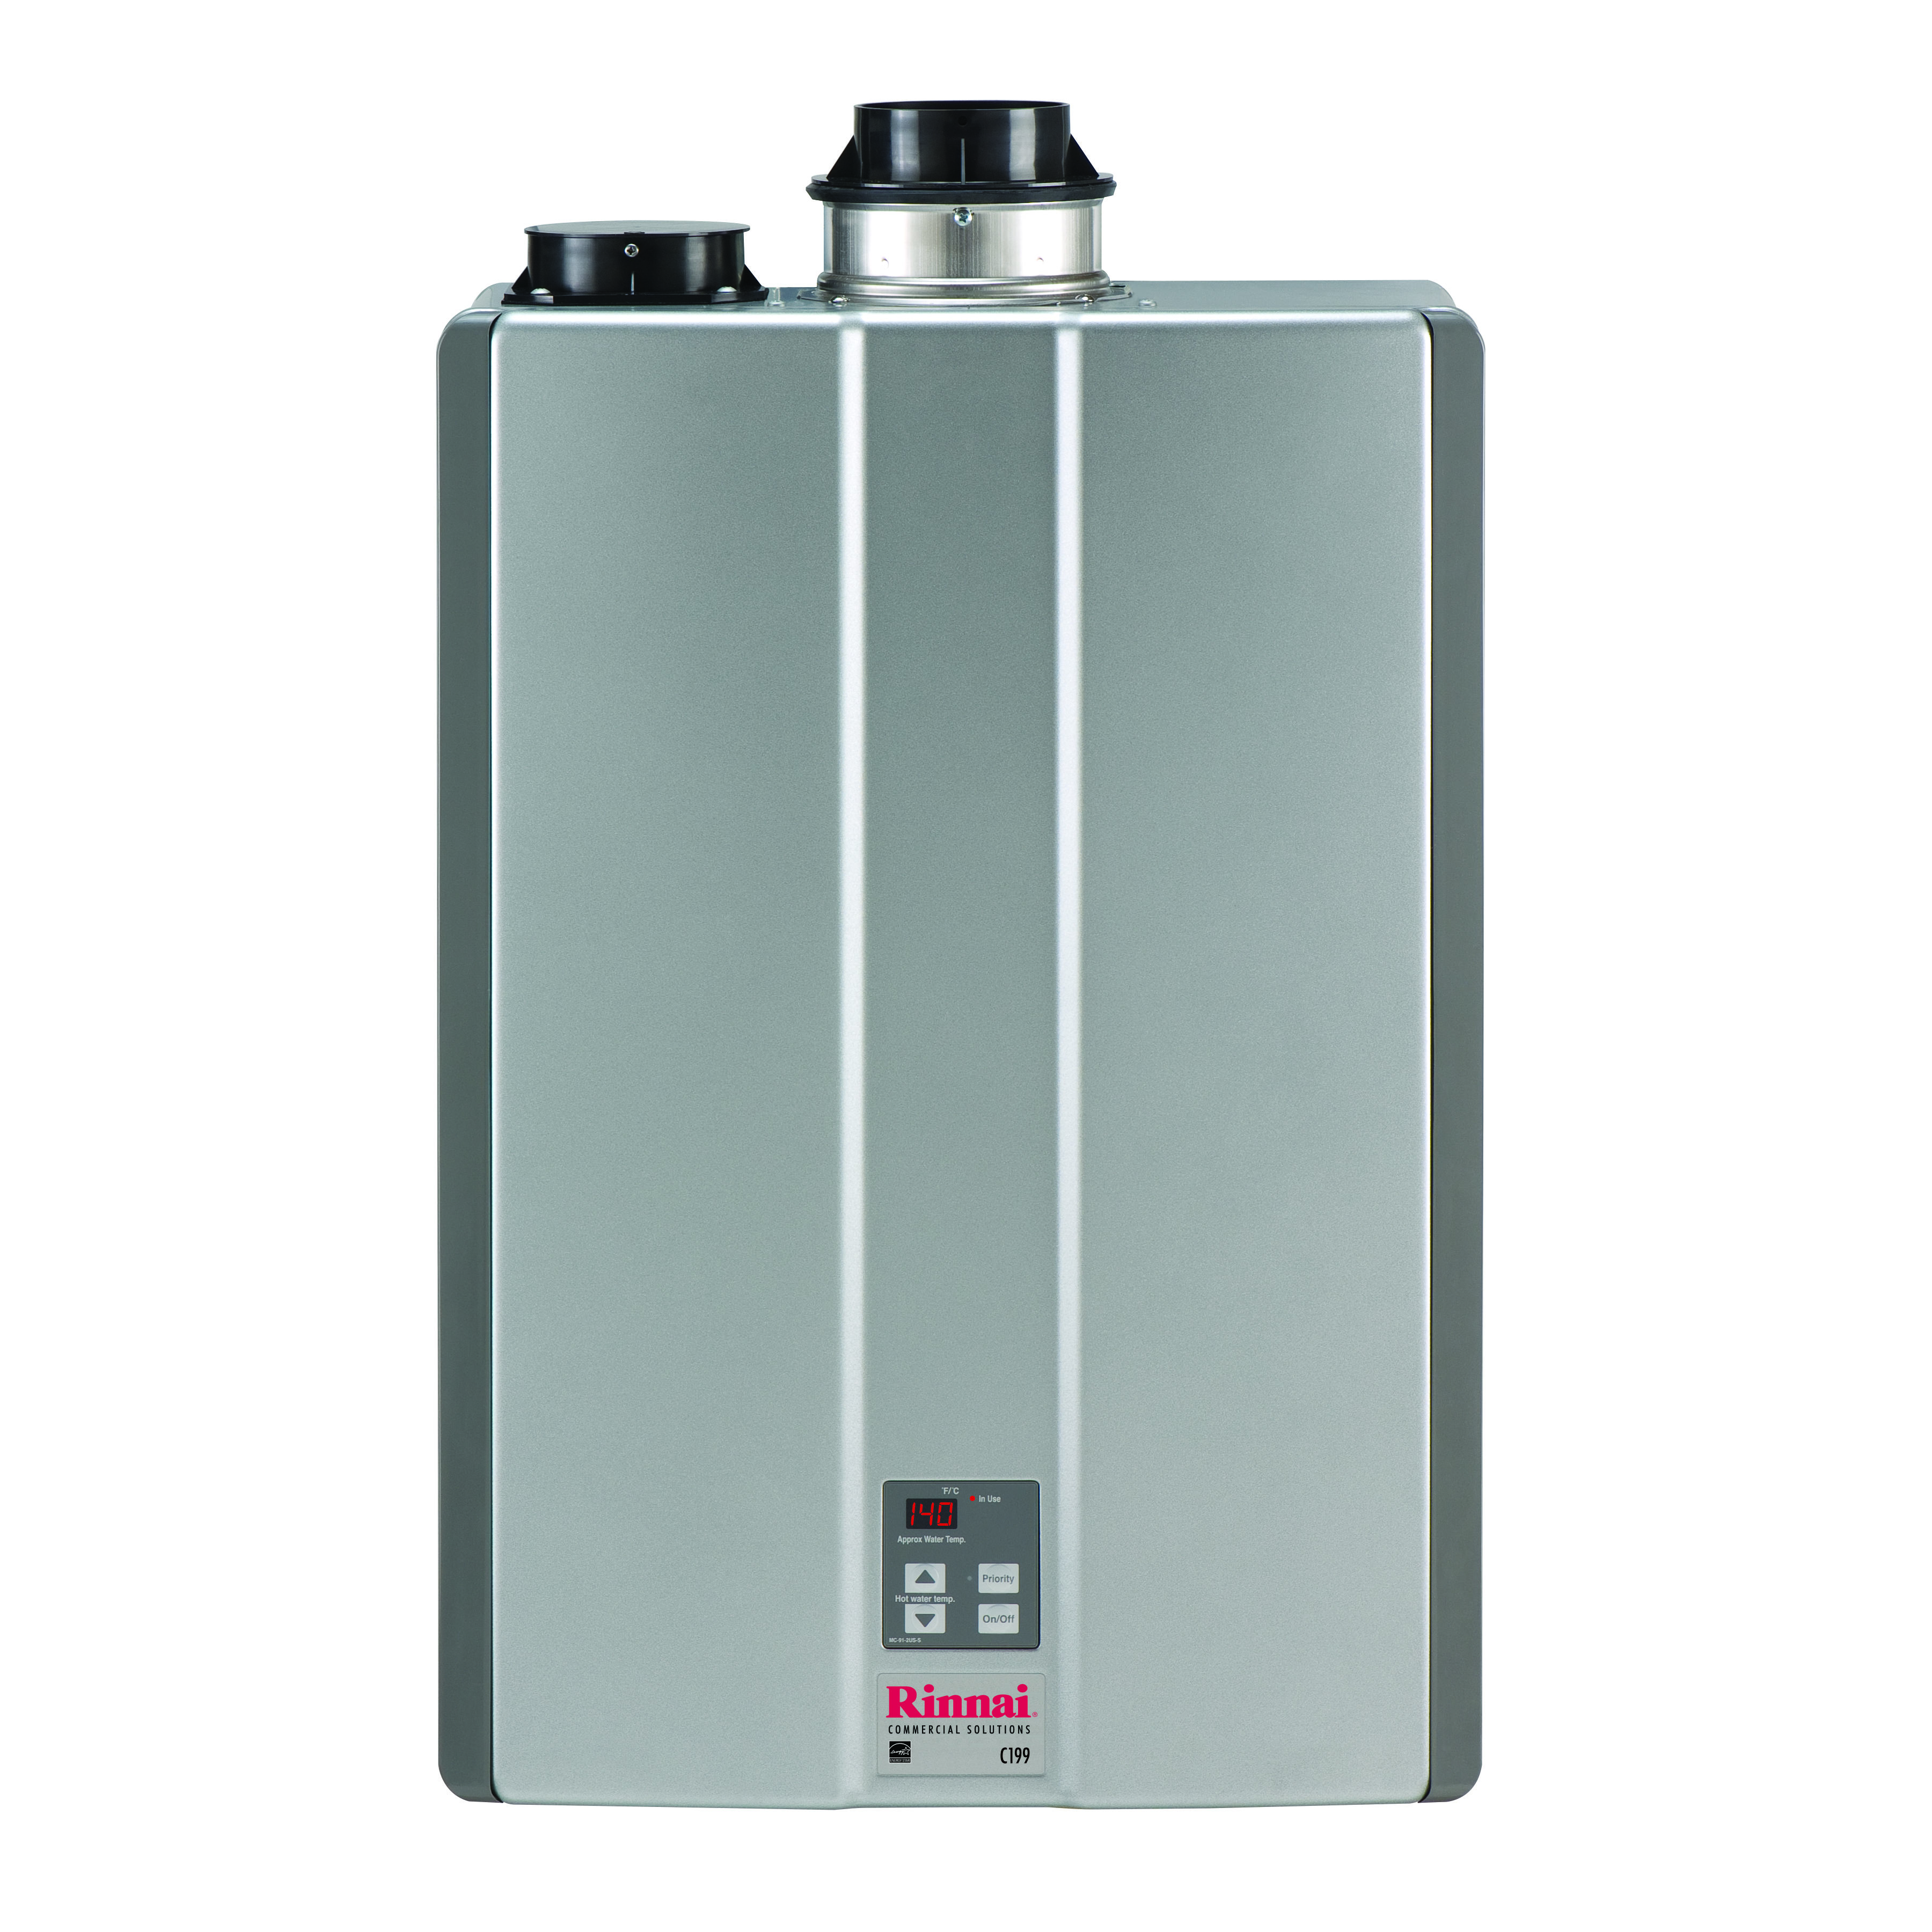 Rinnai Tankless Commercial Water Heaters - C199IN